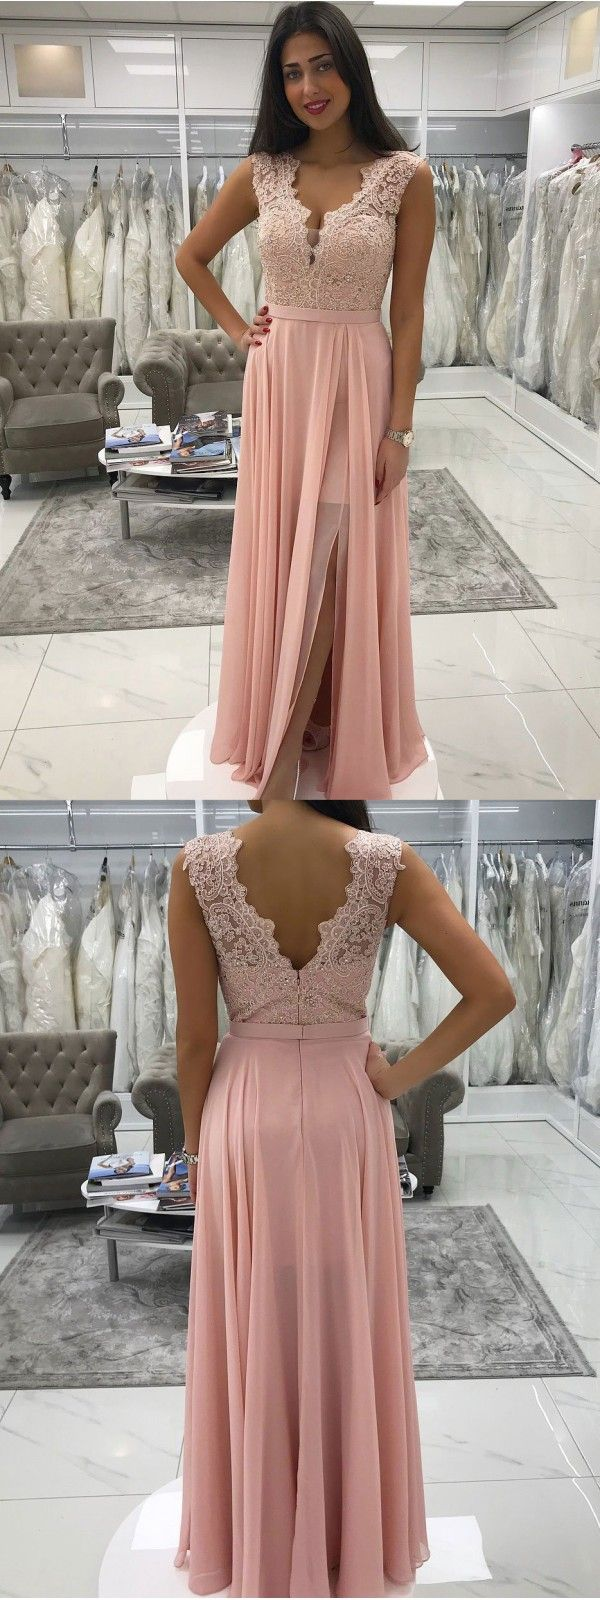 Long chiffon lace beaded prom dresses pink vneck formal dress with